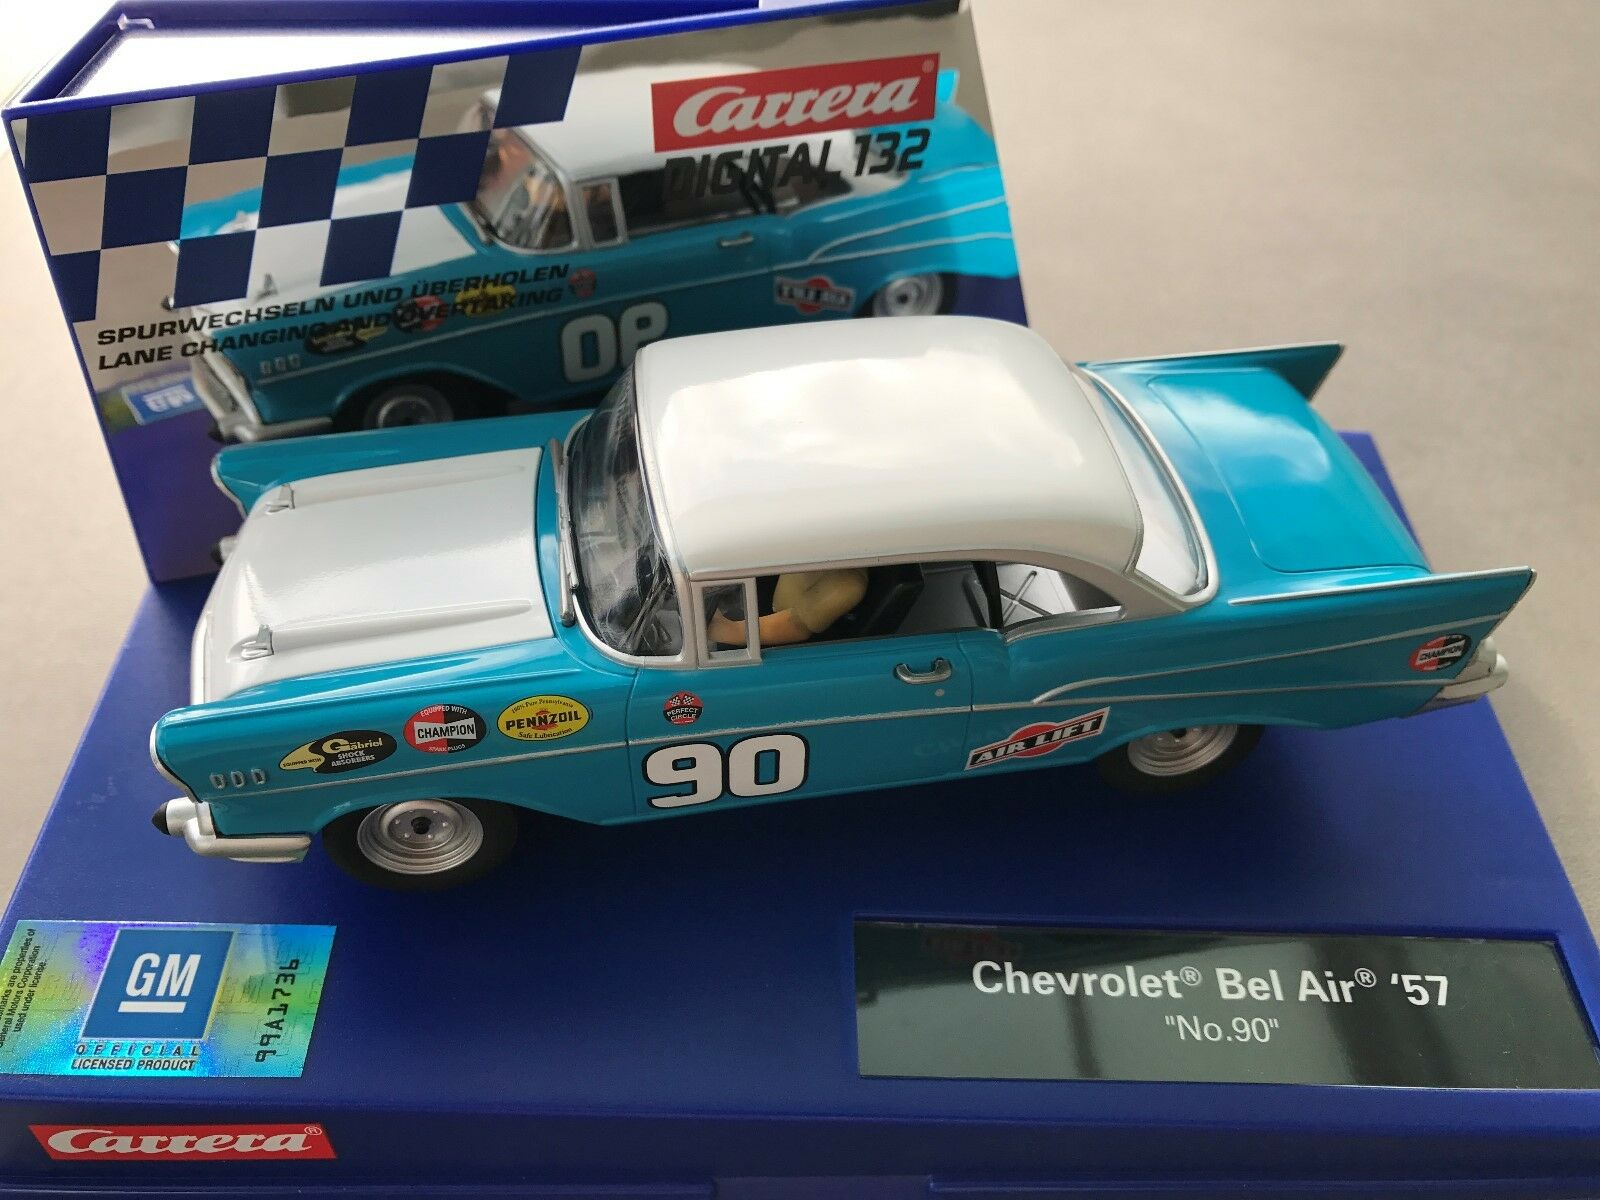 Carrera Digital 132 30795 Chevrolet Bel Air '57 No. 90 USA